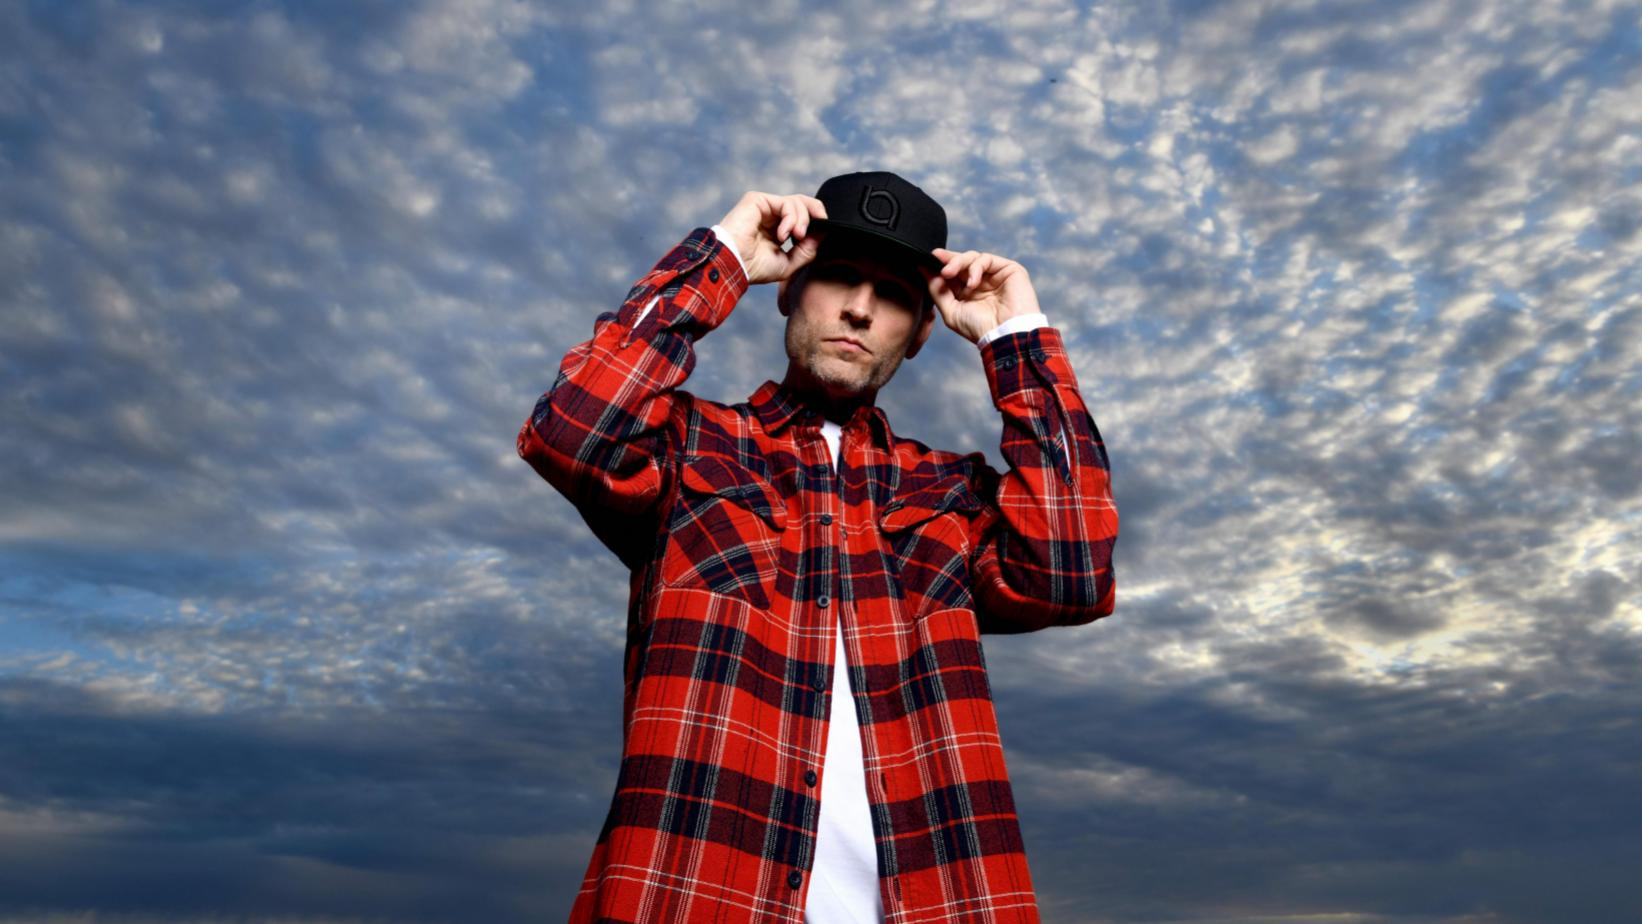 Kaskade stands in front of a cloudy blue sky